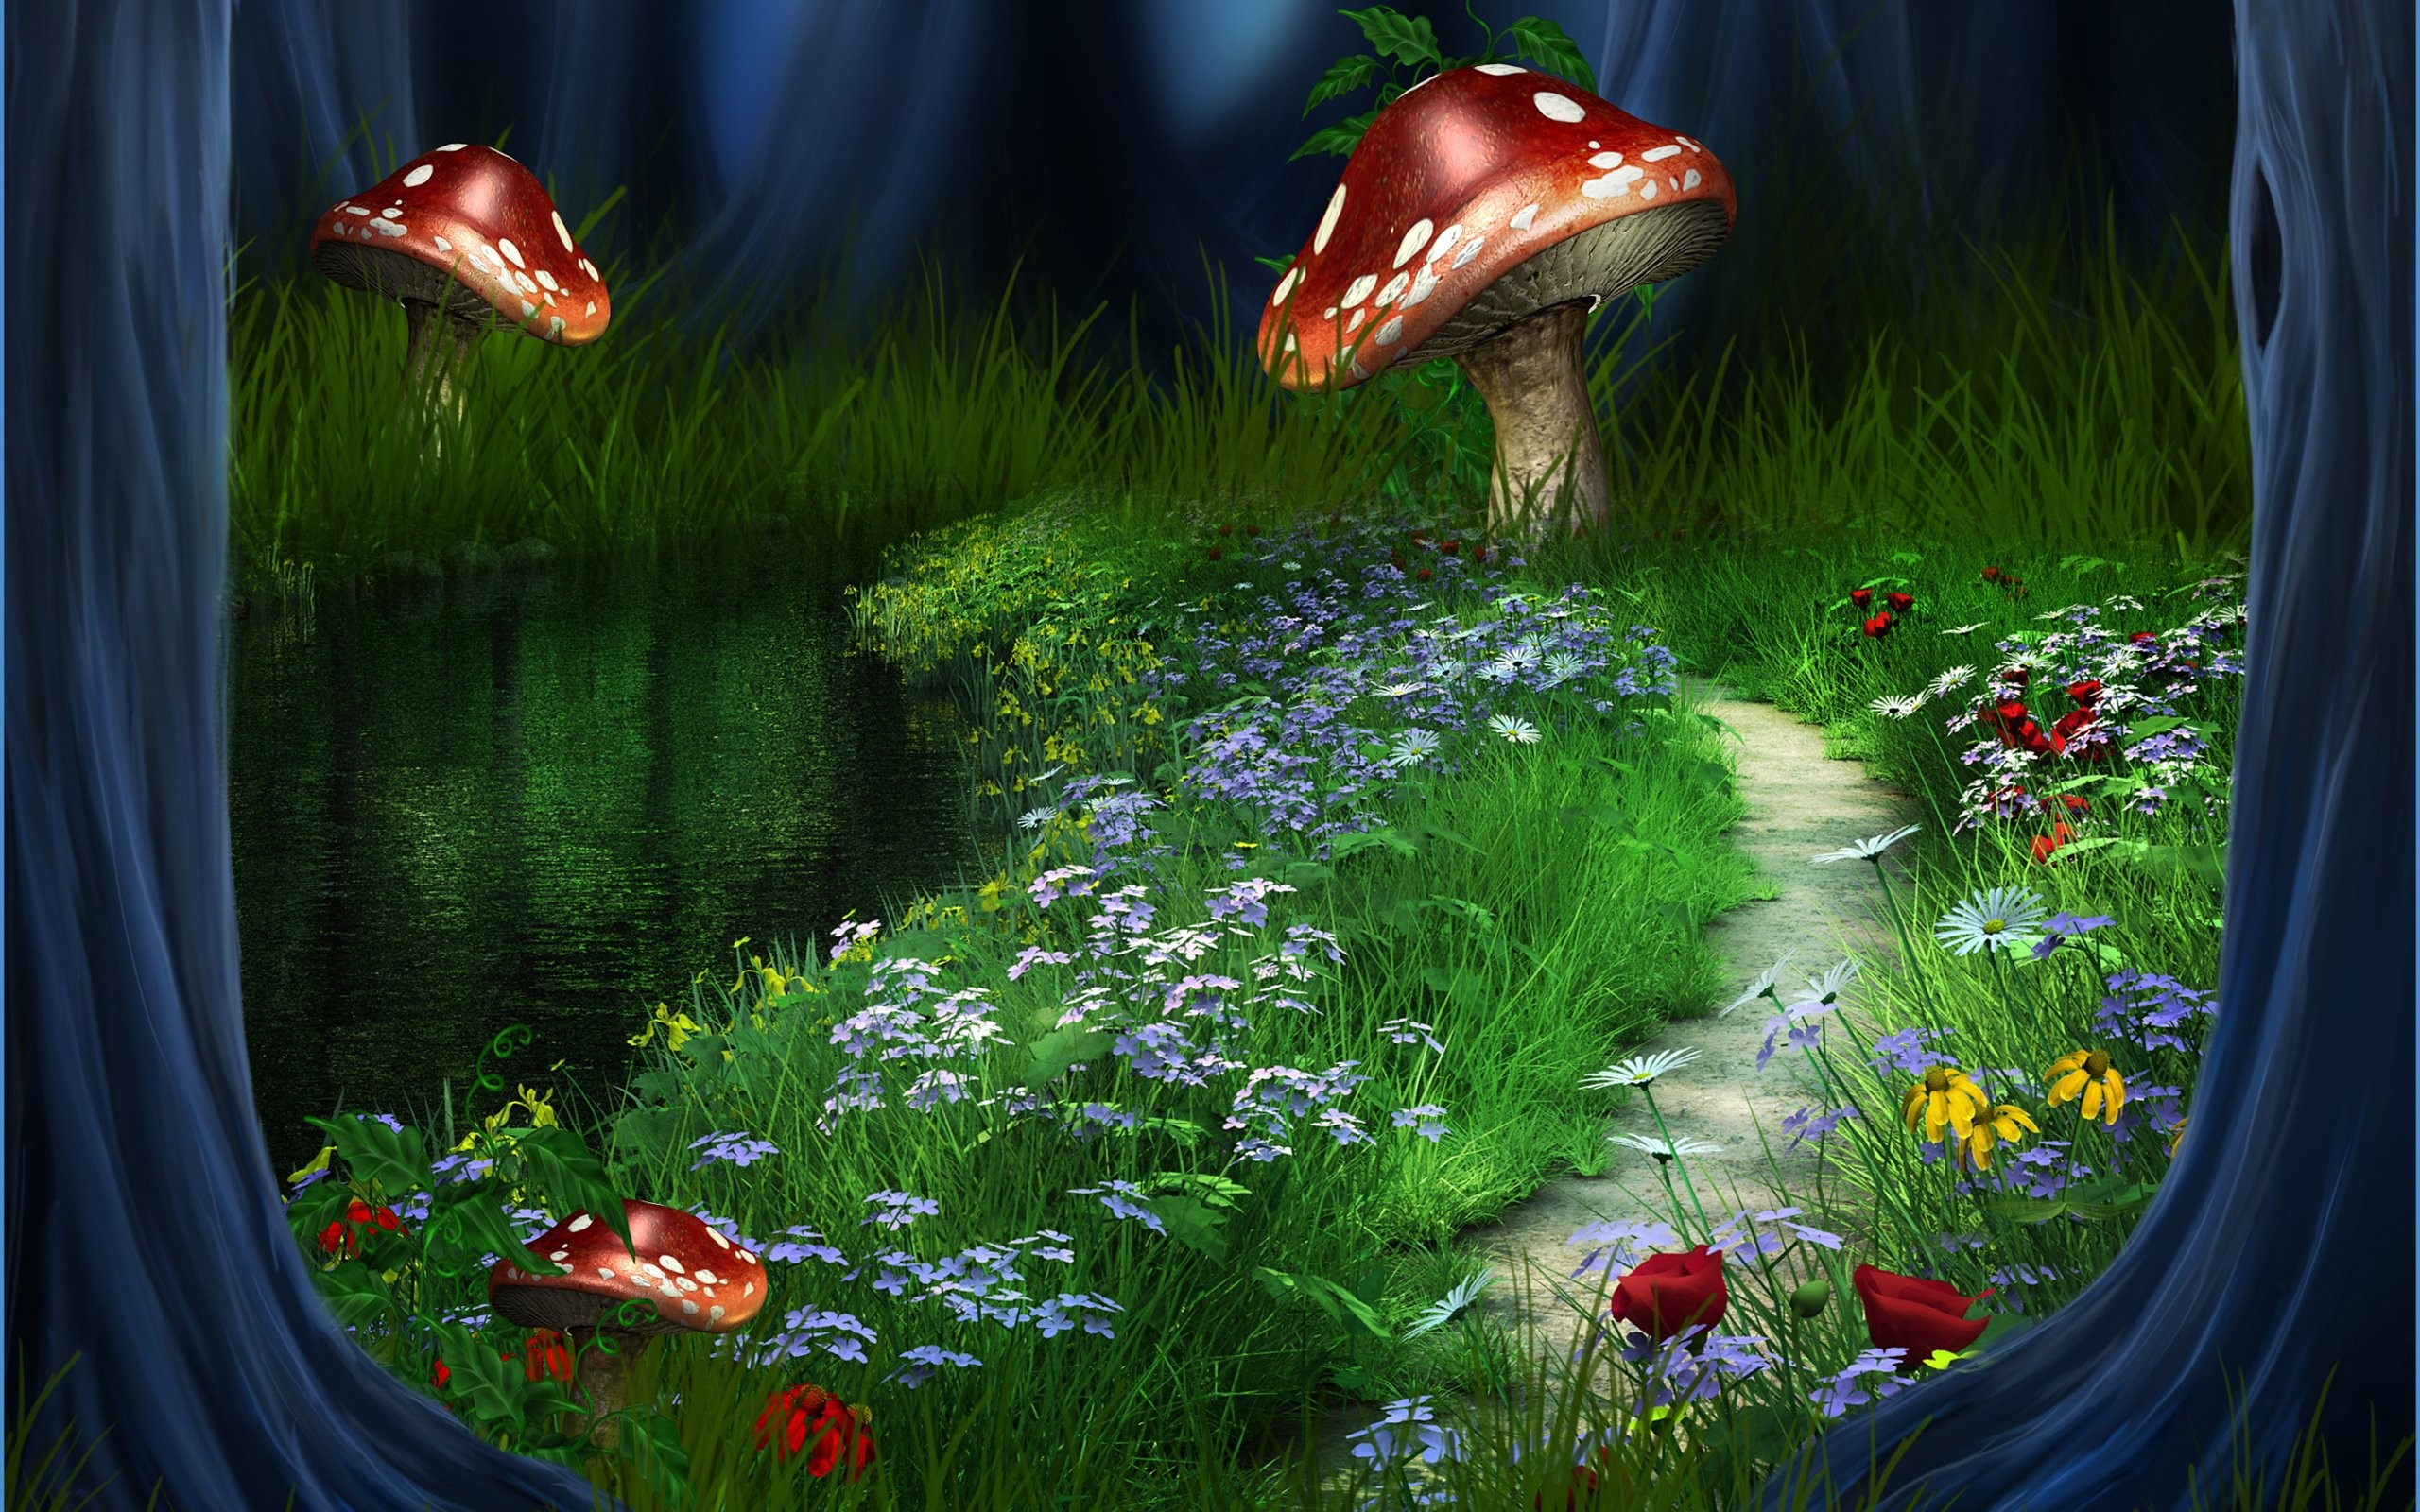 Res: 2560x1600, 3d, River, Forest, Landscape, Nature, Path, Flowers Wallpapers HD / Desktop  and Mobile Backgrounds